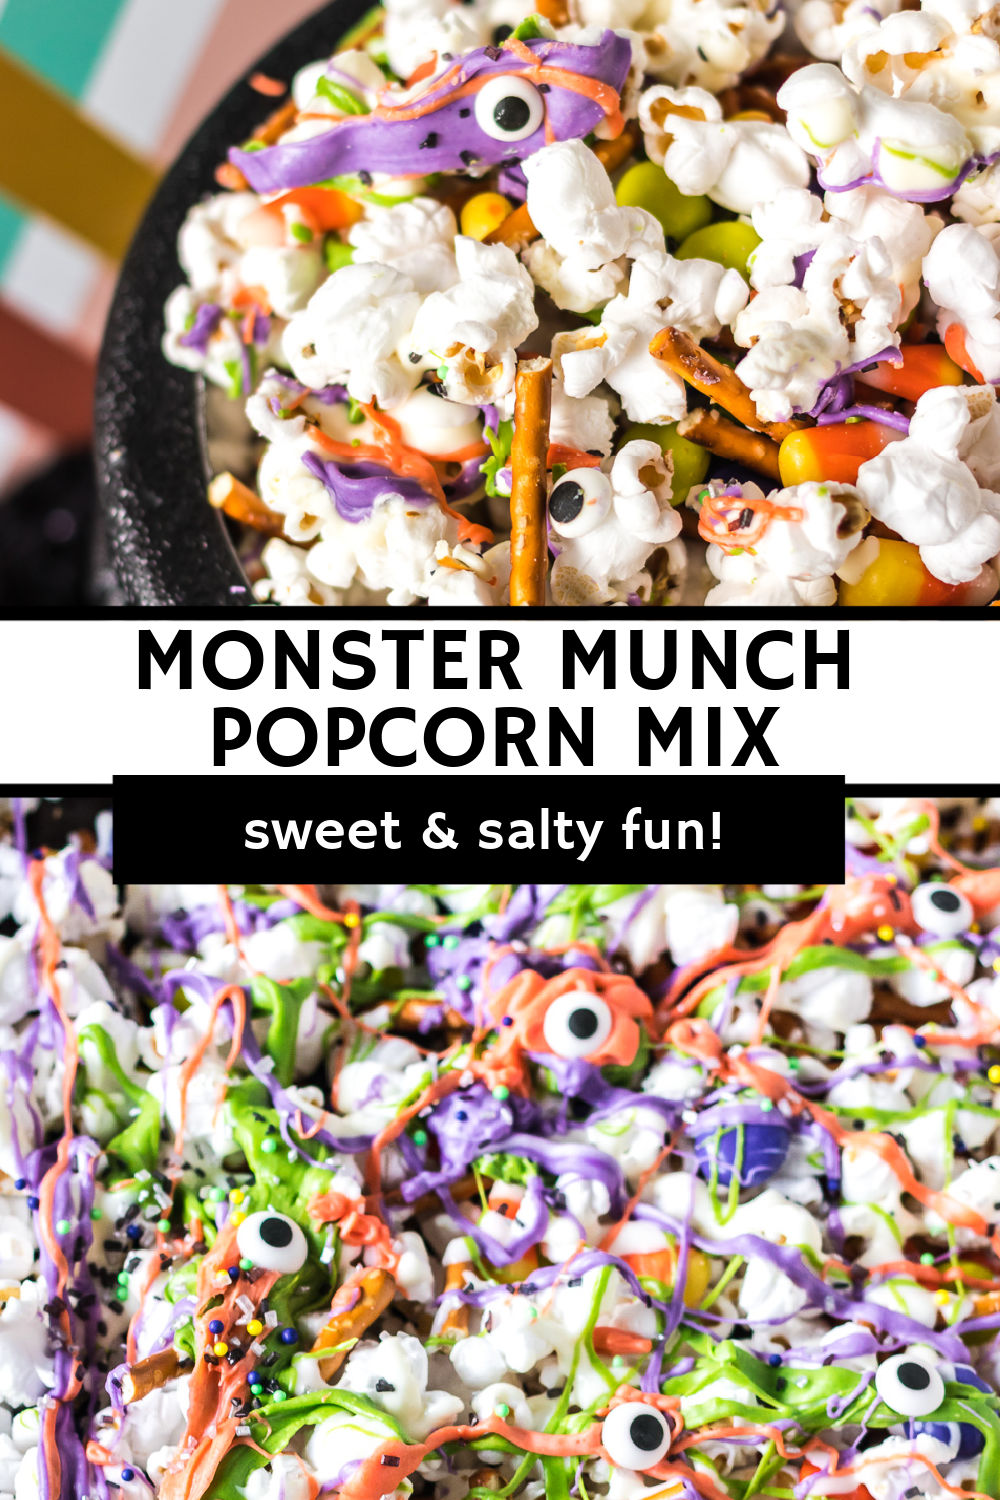 Halloween Monster Munch Popcorn Mixis a super easy party treat made with popcorn, pretzels, and Halloween candy that is drizzled with colorful vanilla candy melts. It's a perfect blend of salty, sweet, and delicious for a fun Halloween snack.   www.persnicketyplates.com